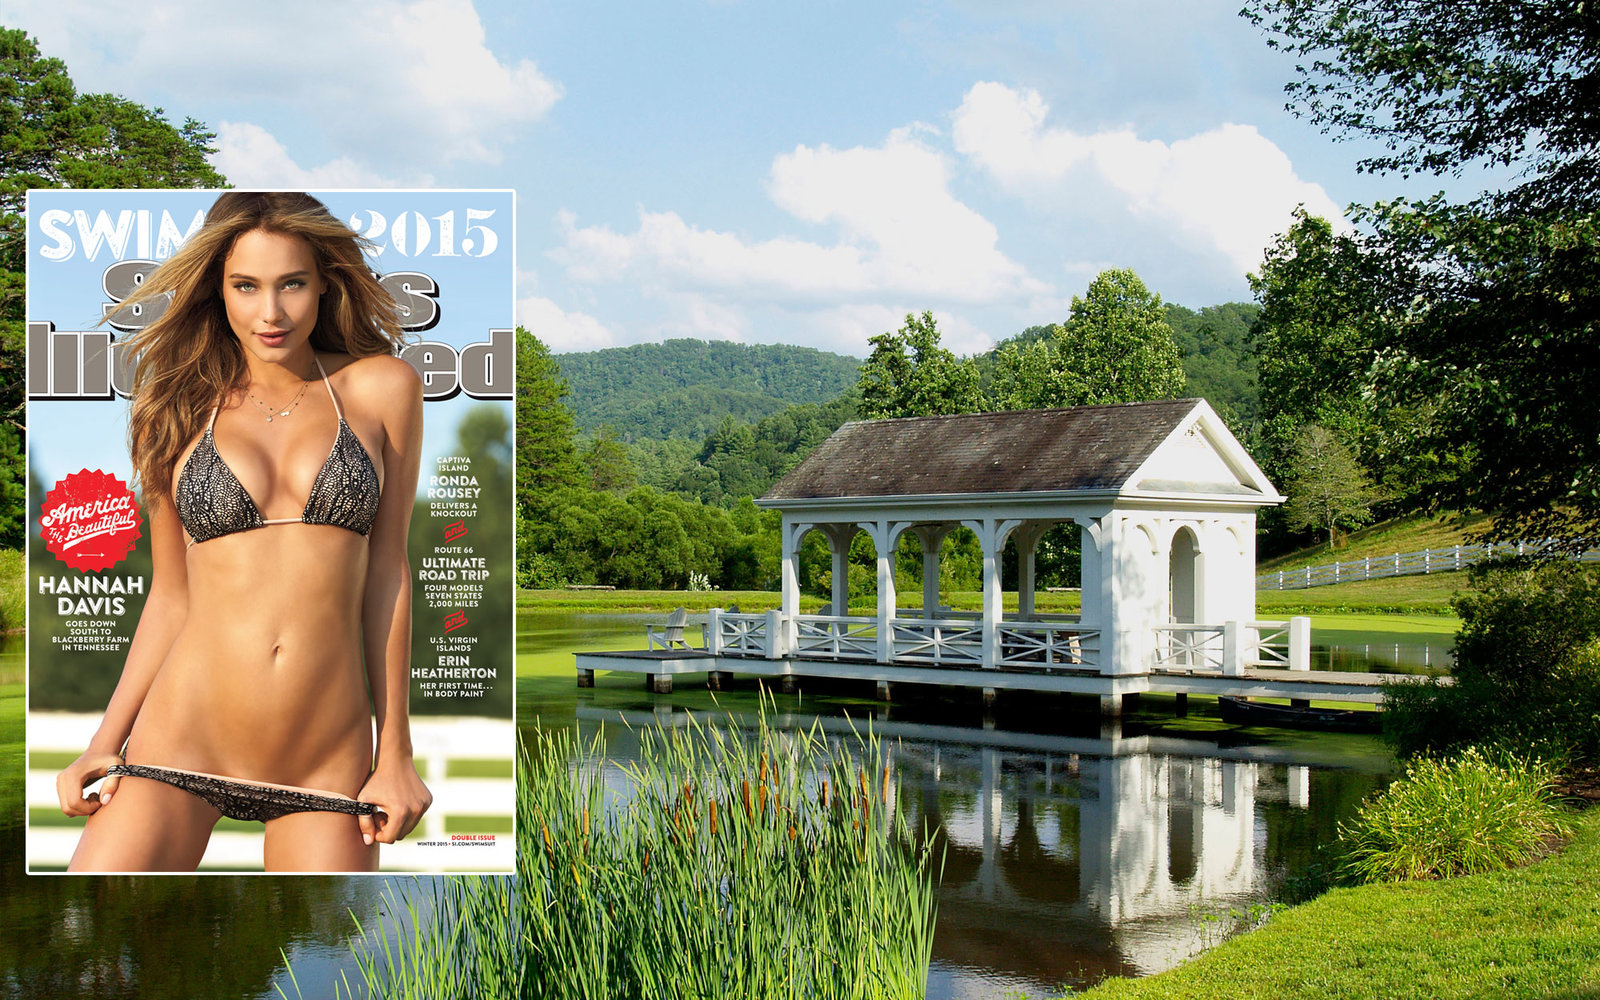 Sports Illustrated Swimsuit Issue 2015 Blackberry Farm Tennessee